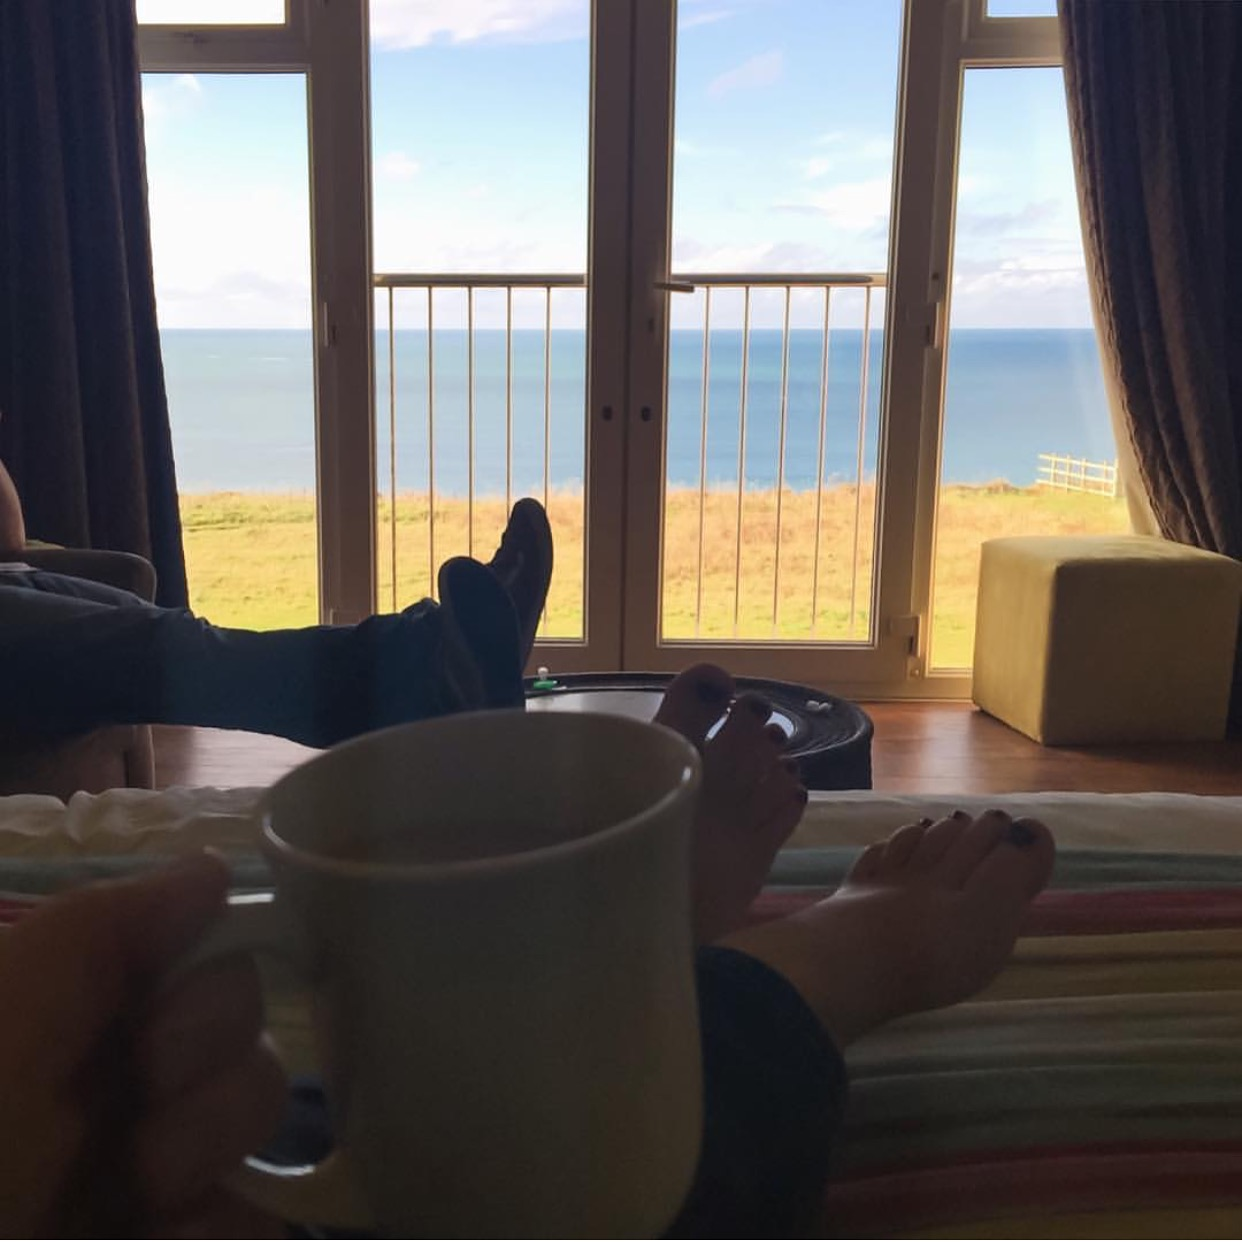 Enjoying a cuppa with 'that view' whilst the boys' were at the Pirate's Kids' Club.